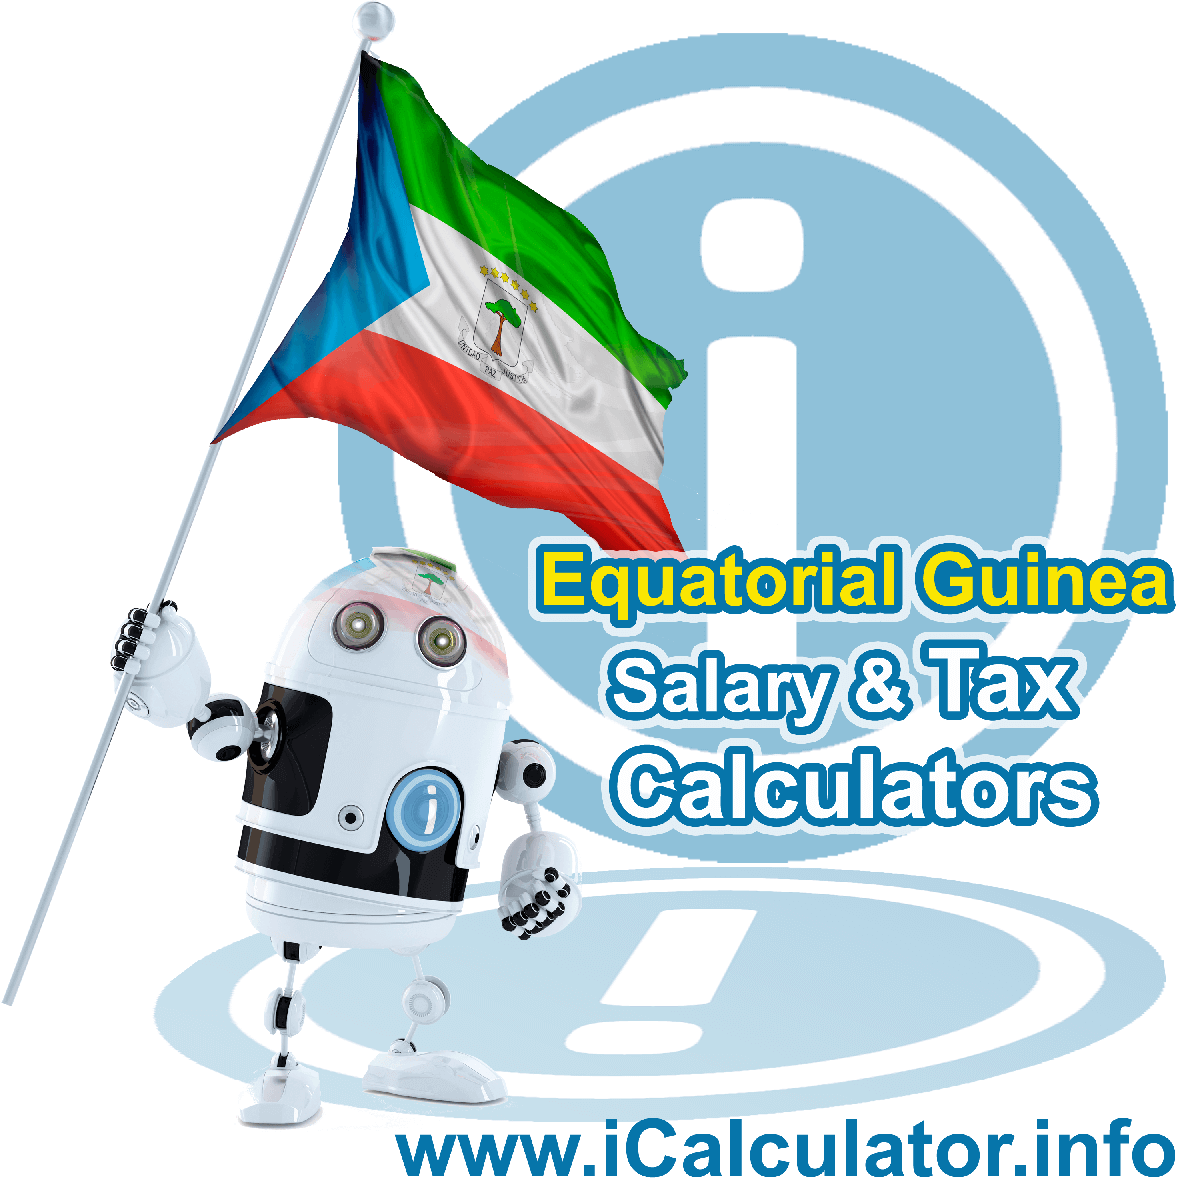 Equatorial Guinea Wage Calculator. This image shows the Equatorial Guinea flag and information relating to the tax formula for the Equatorial Guinea Tax Calculator